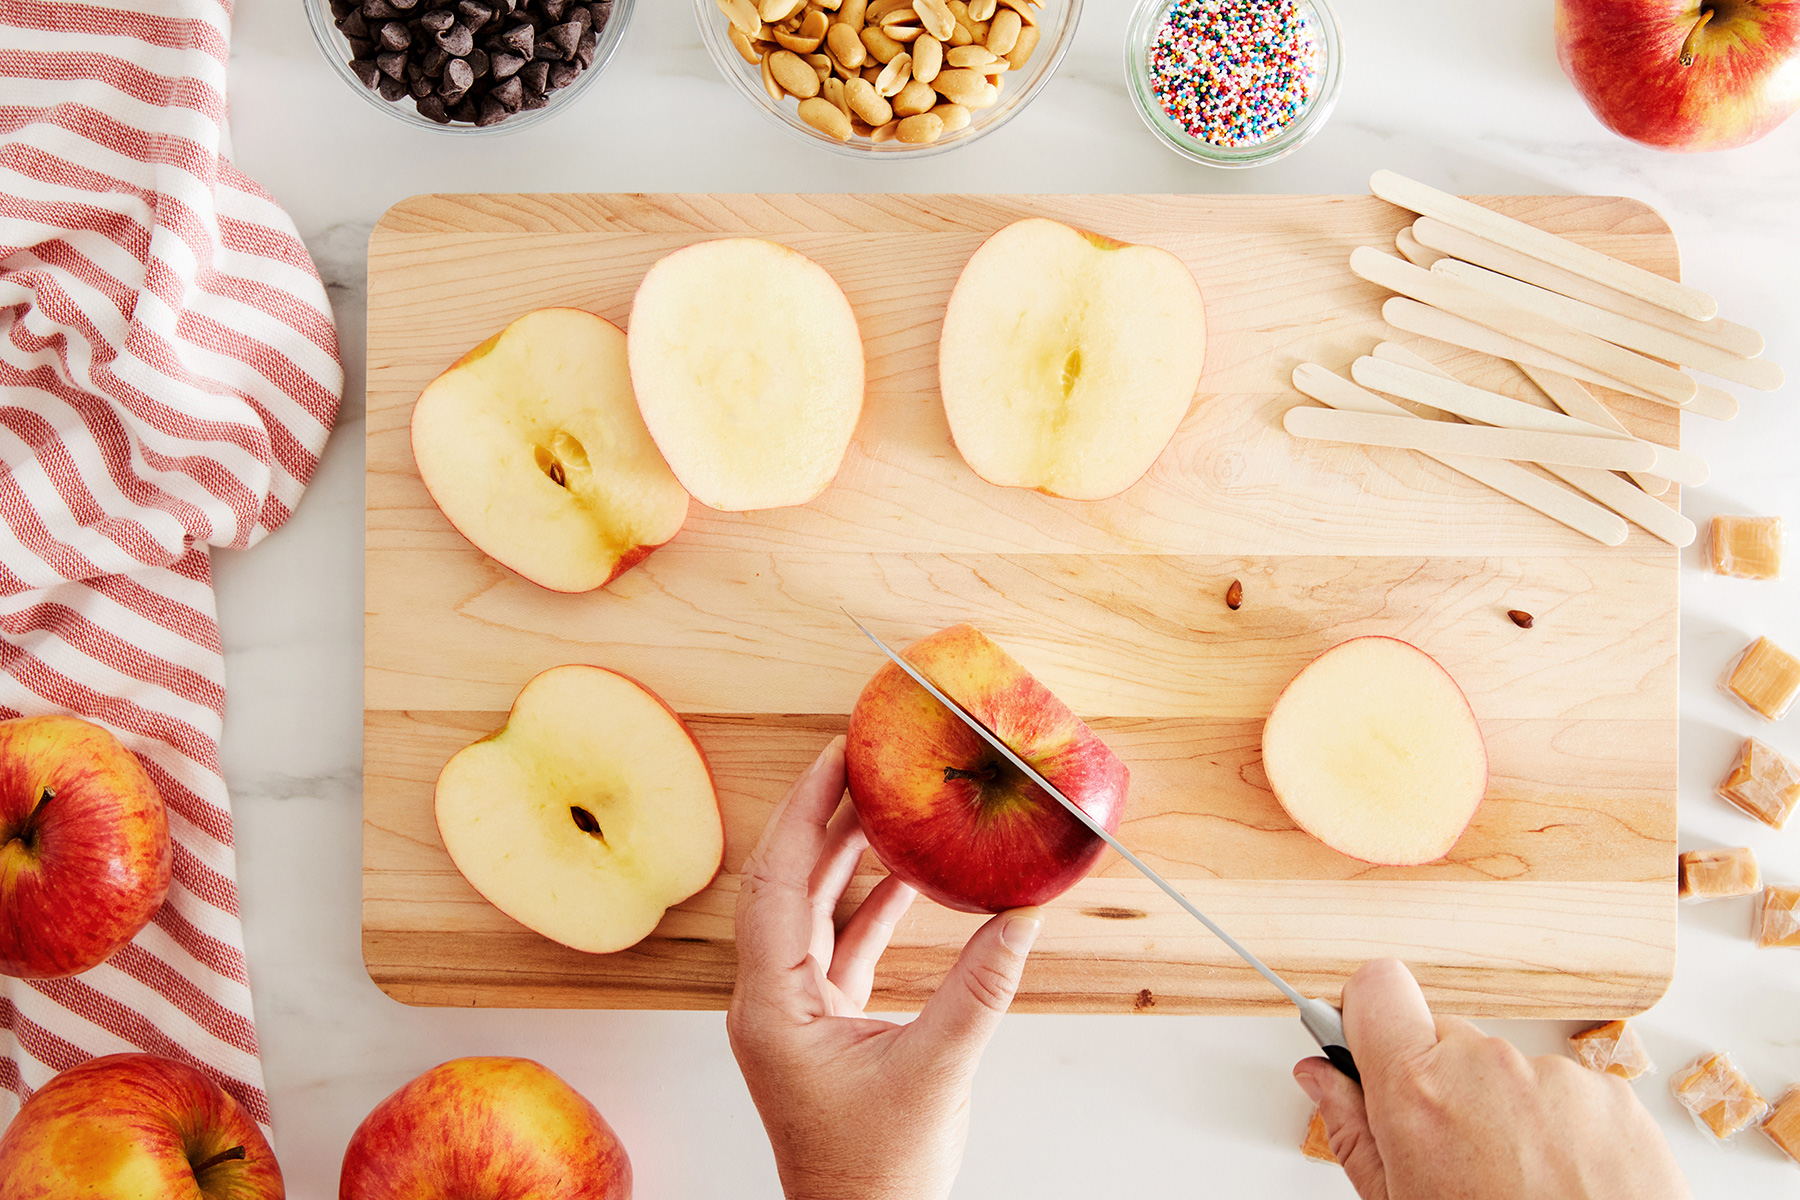 cutting apple into slices